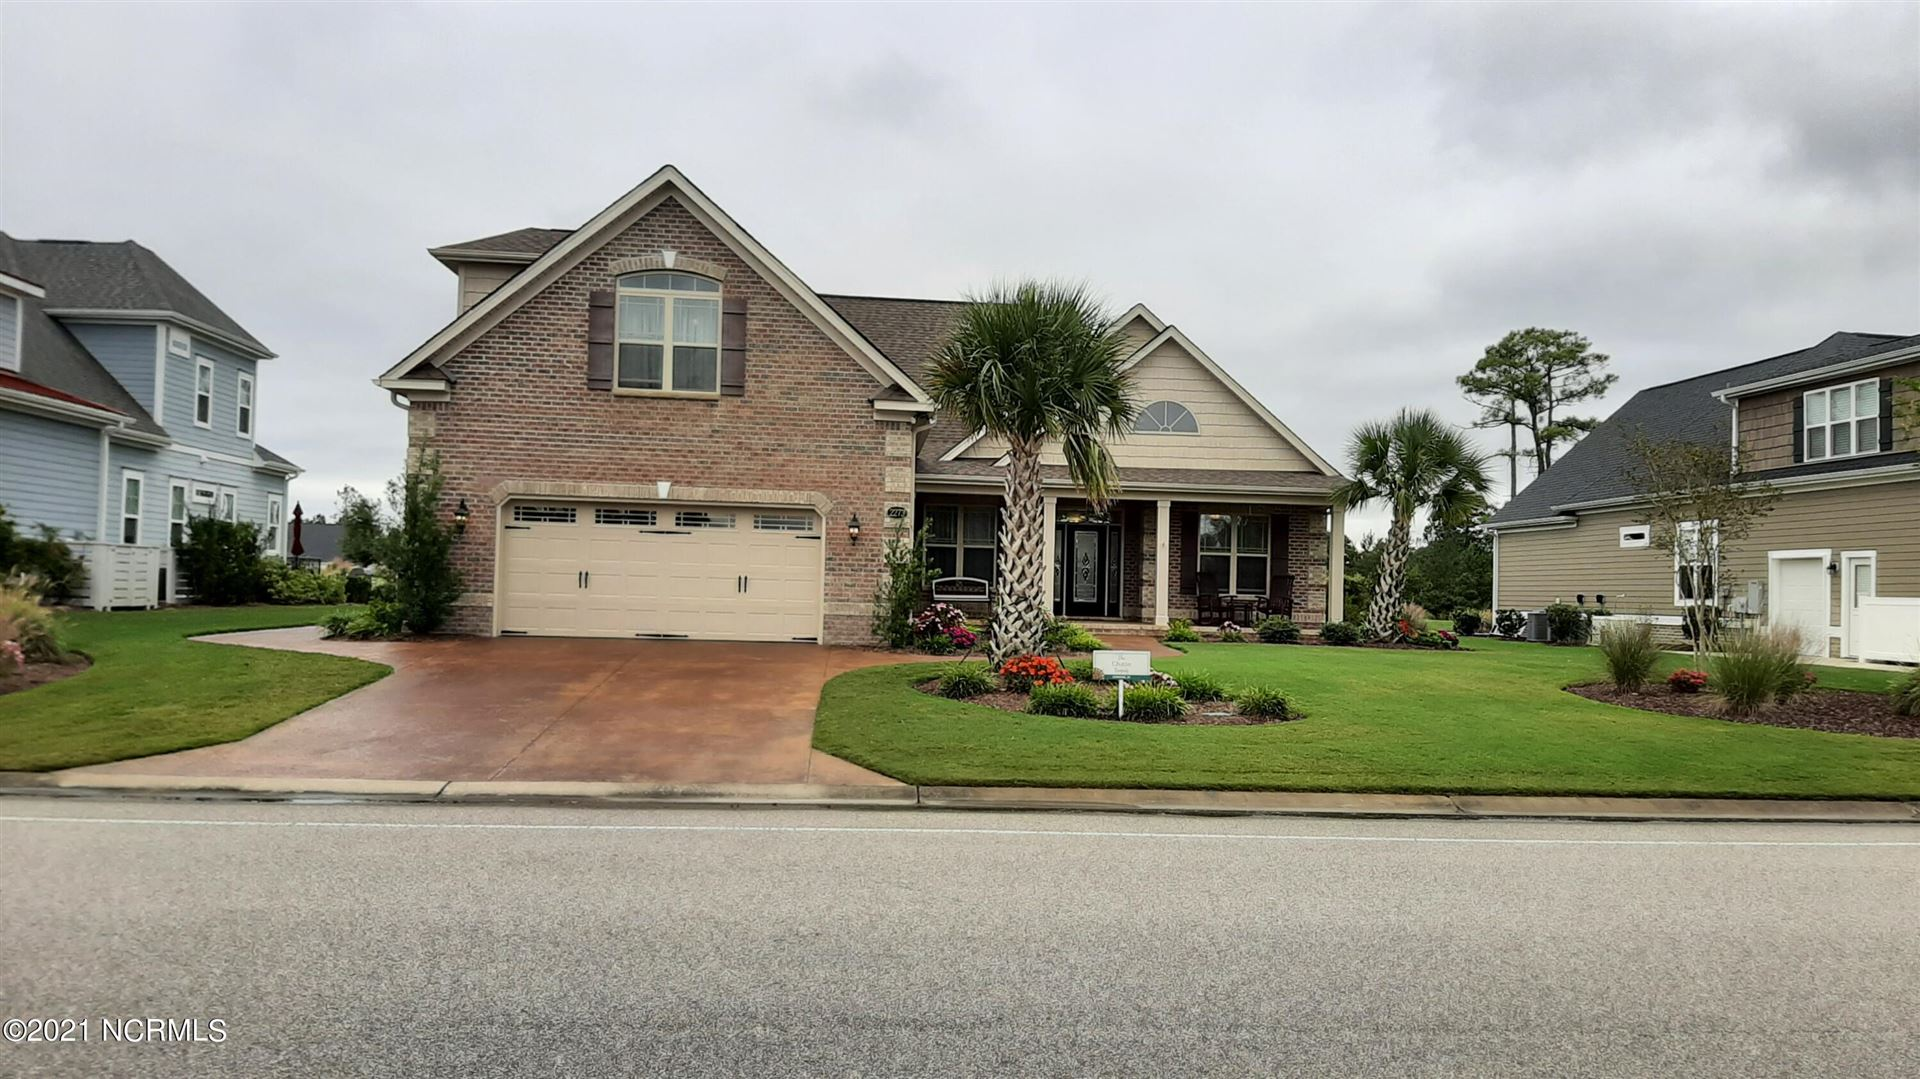 Photo of 2273 Compass Pointe South Wynd, Leland, NC 28451 (MLS # 100292904)